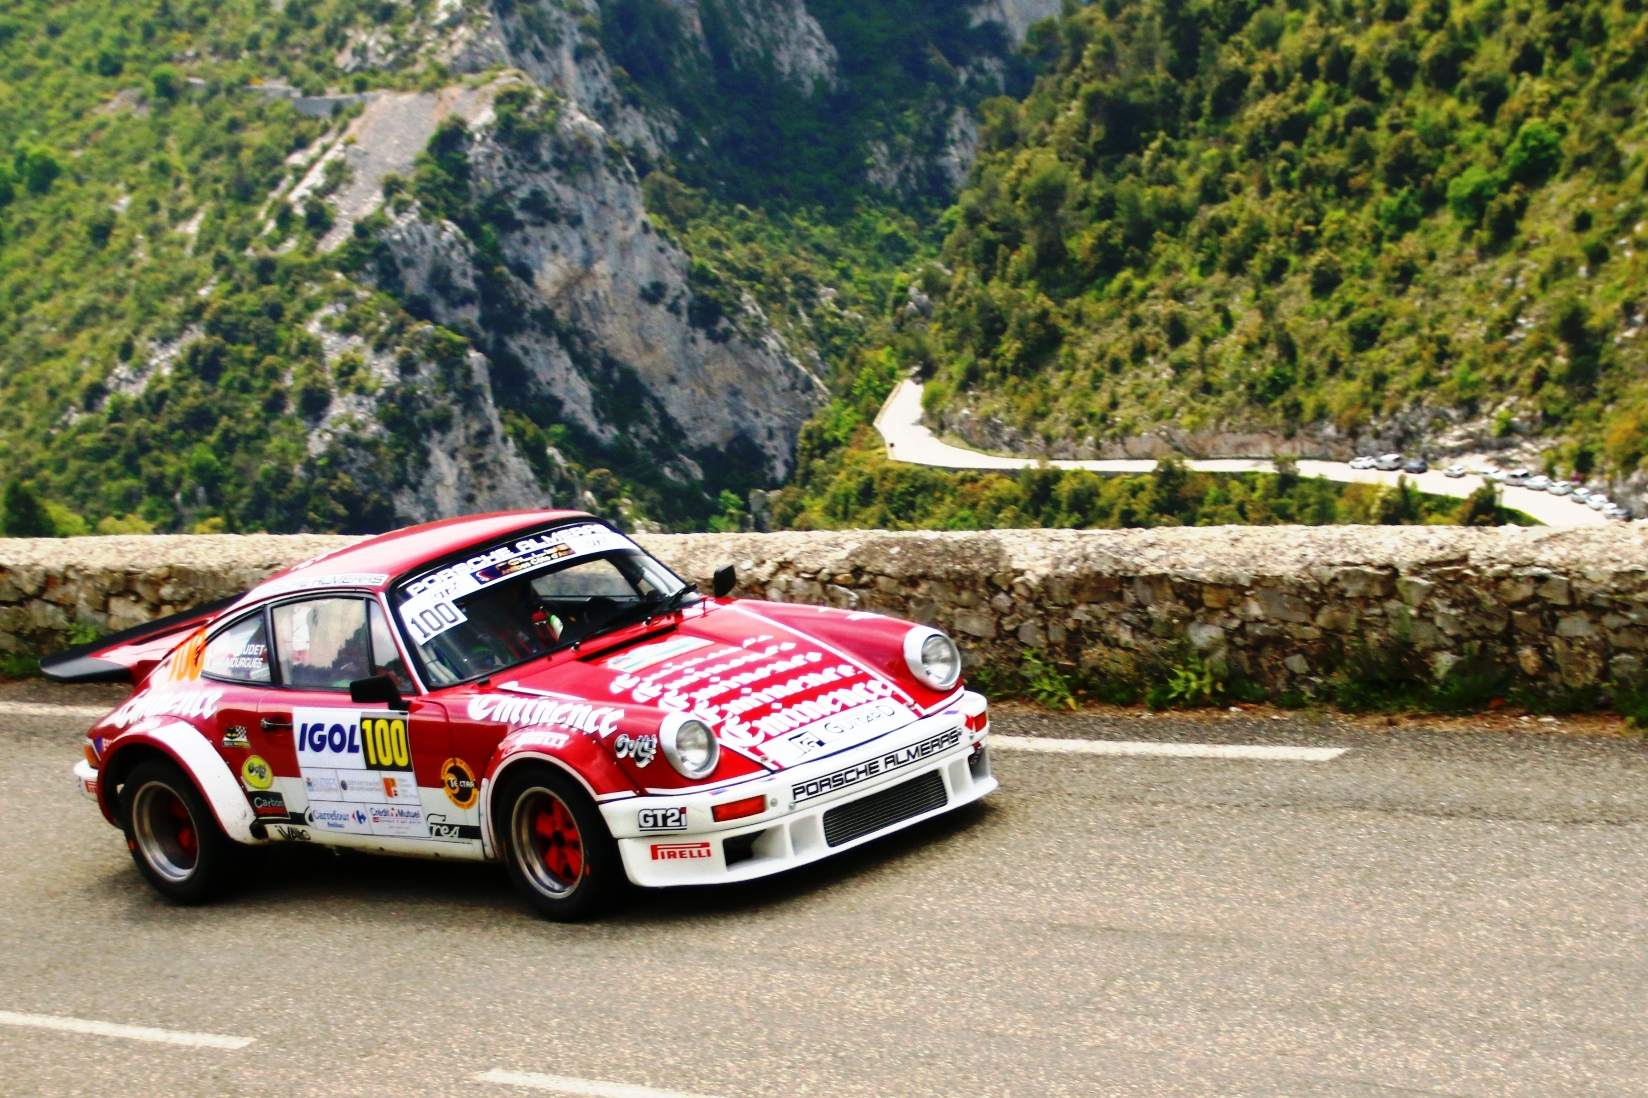 rallye d'Antibes 2017 photo Jean-François THIRY (4)